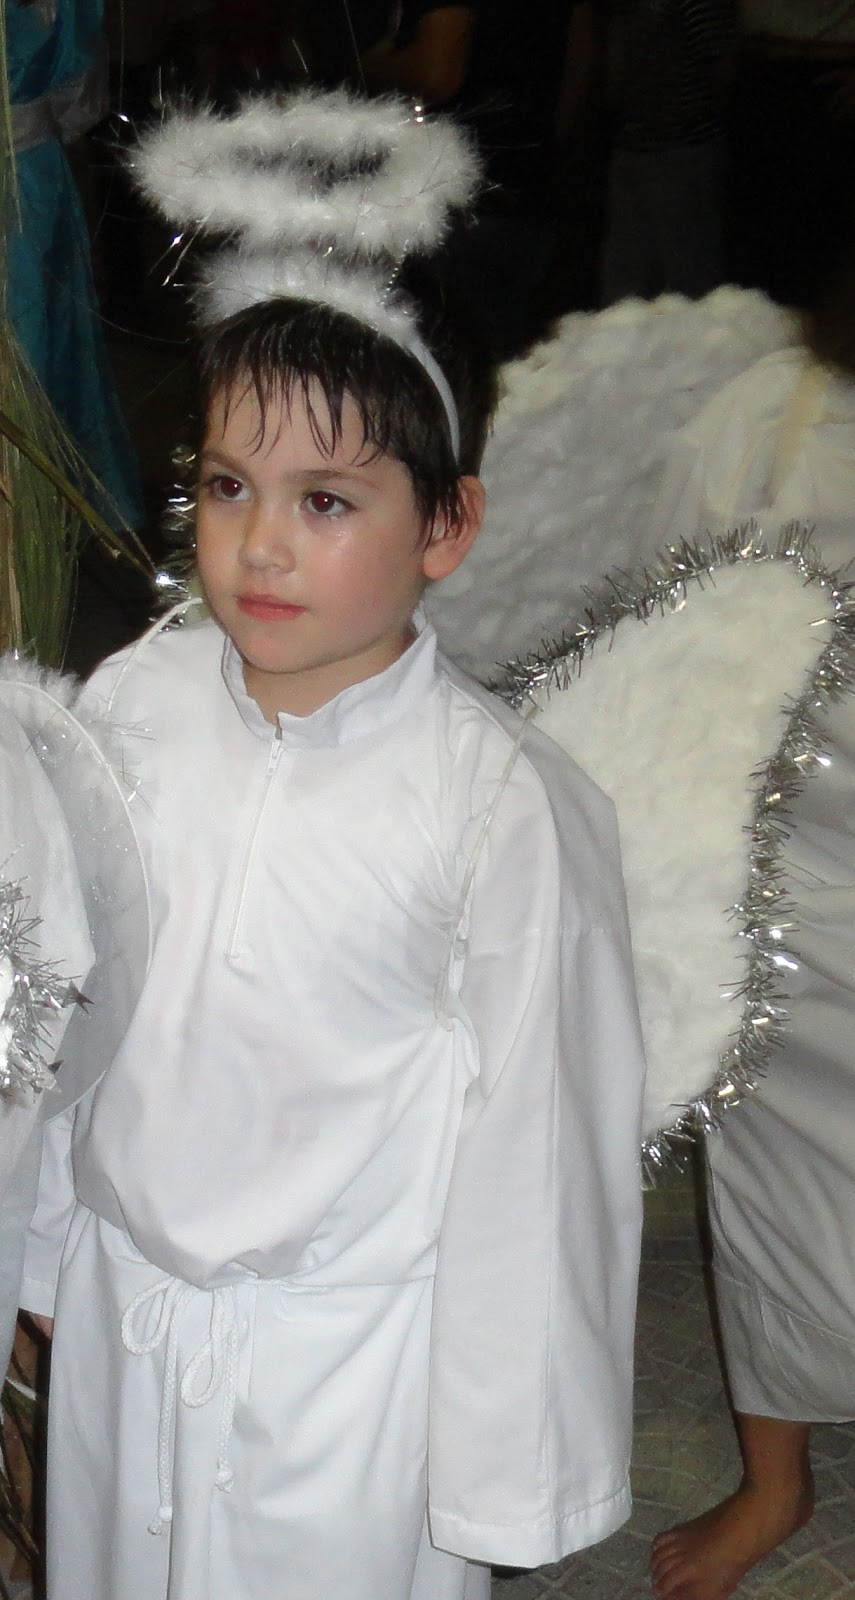 Disfraz de angel de la guarda recrear manualidades arte - Trajes de angelitos para ninos ...